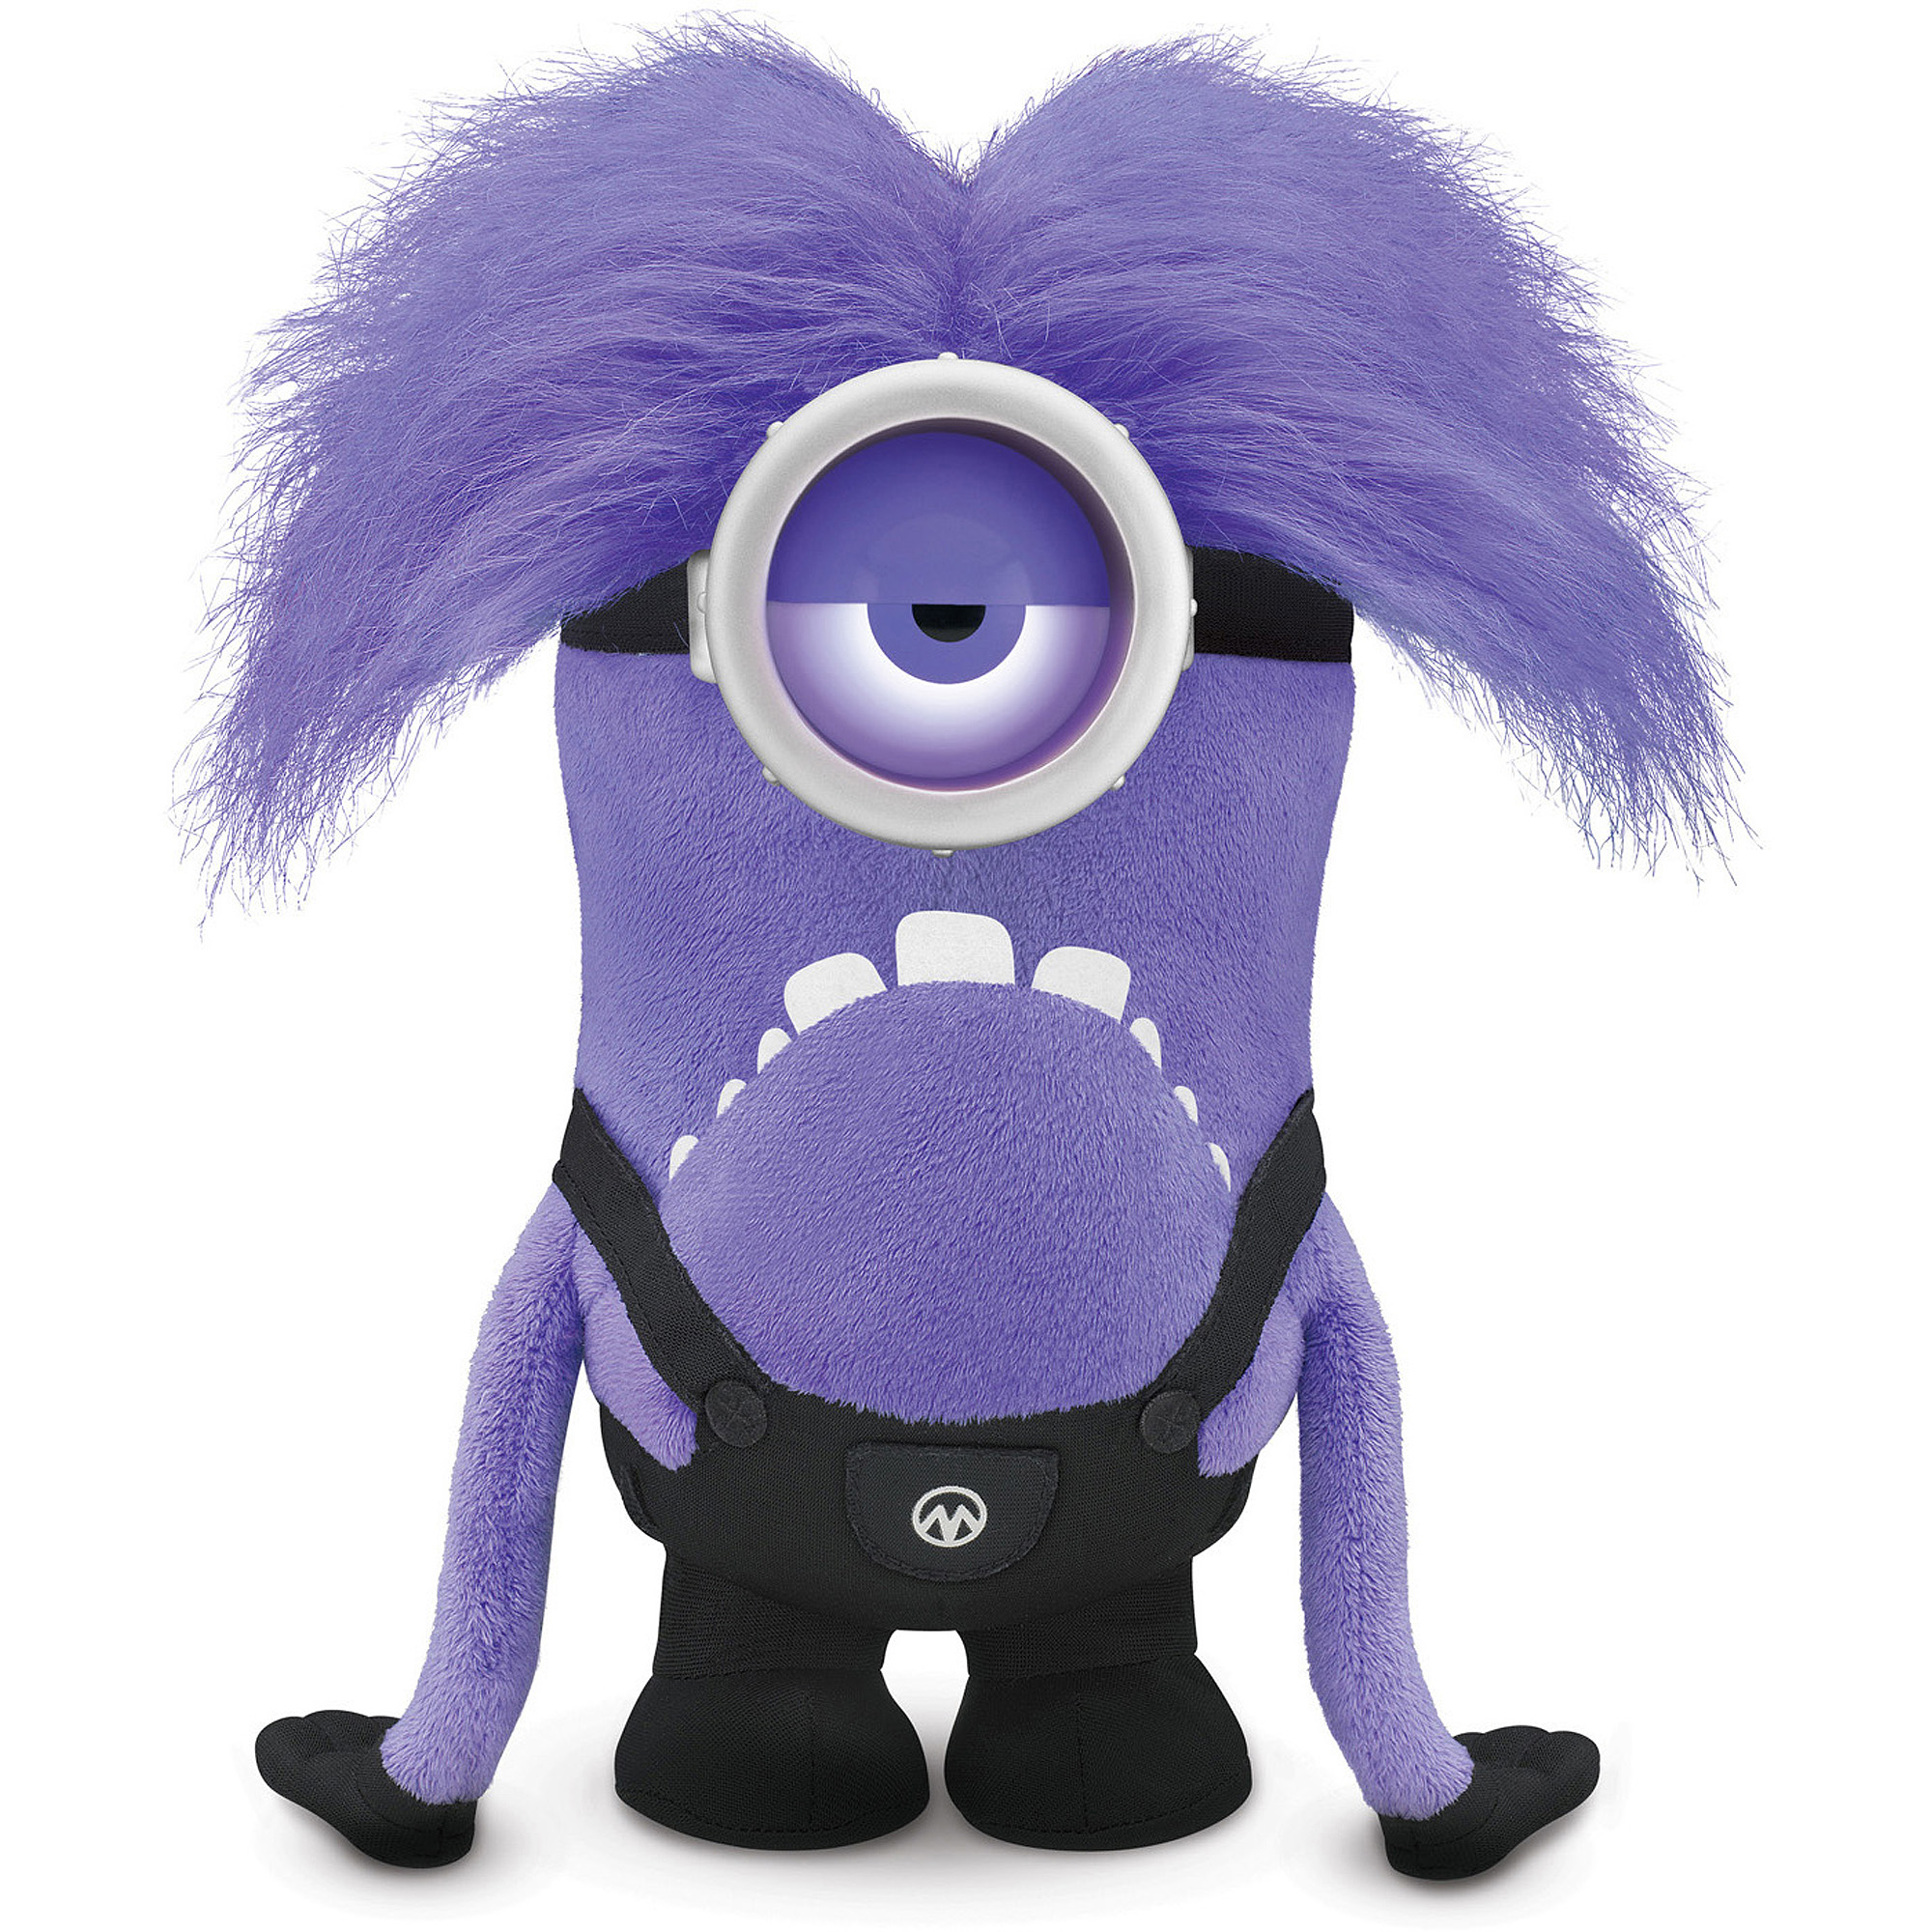 Despicable Me Talking Purple Minion Plush - Walmart.com | 450 x 450 jpeg 31kB